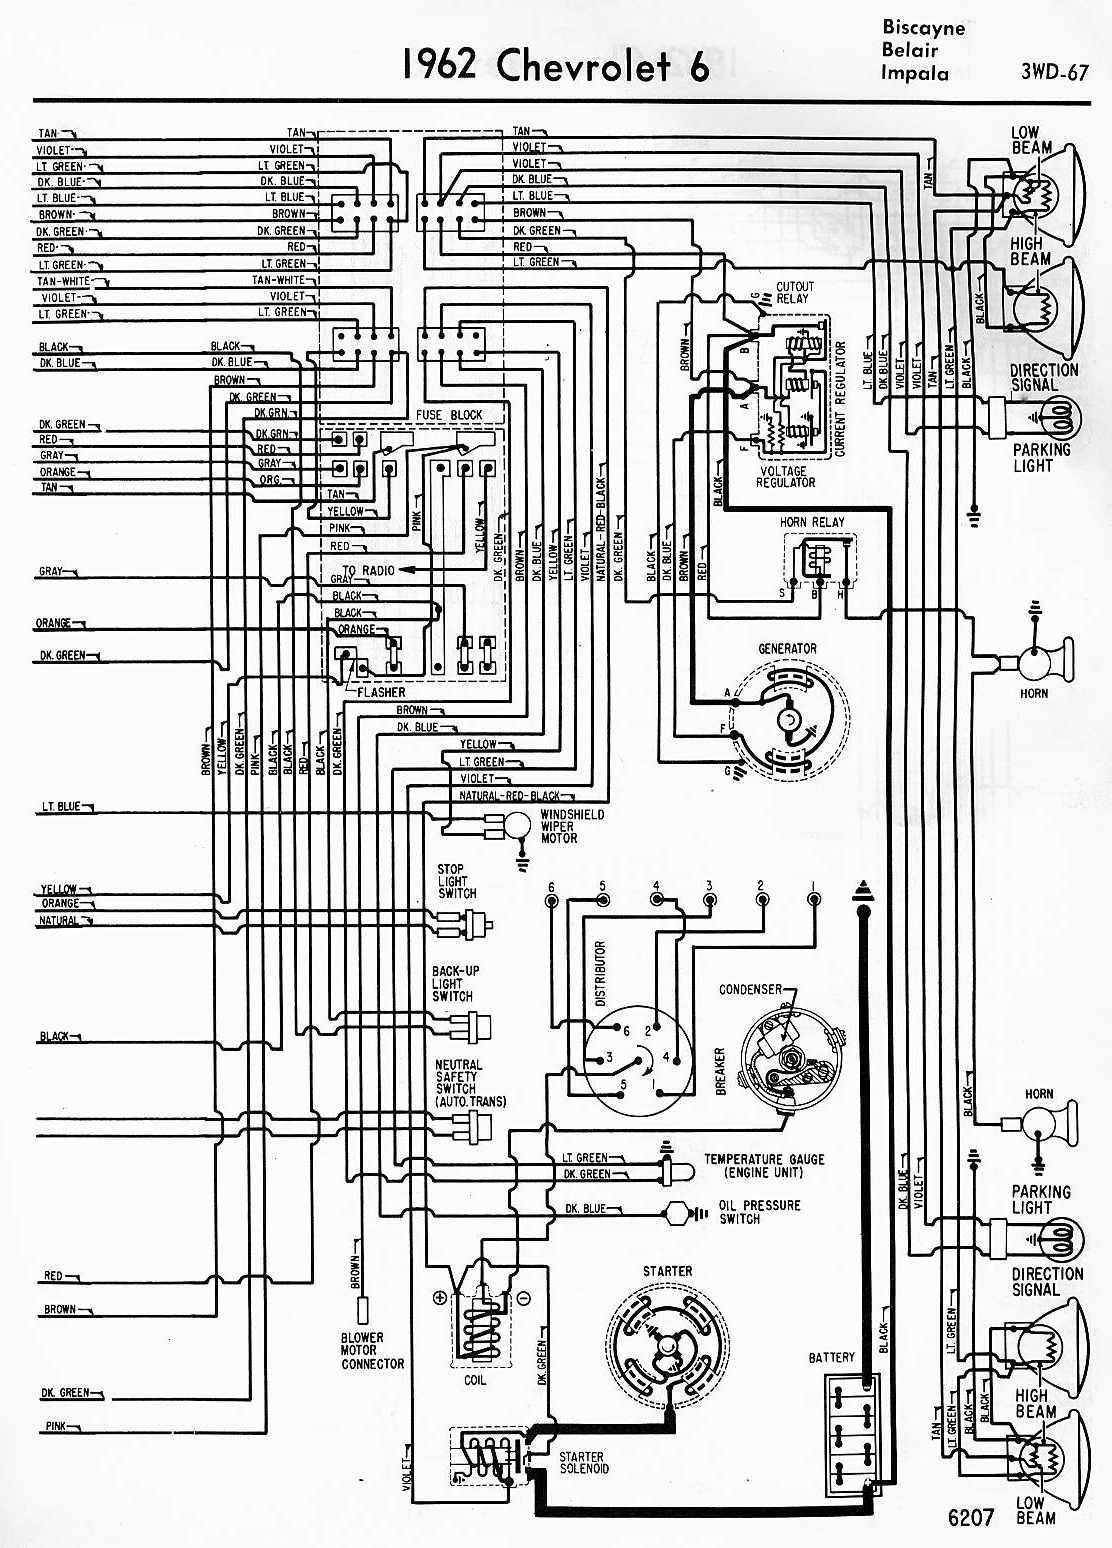 1966 Impala Wagon Wiring Diagram Archive Of Automotive Electrical Installation Diagrams 1972 Chevelle Harness Auto Rh Stanford Edu Uk Co Gov Bitoku